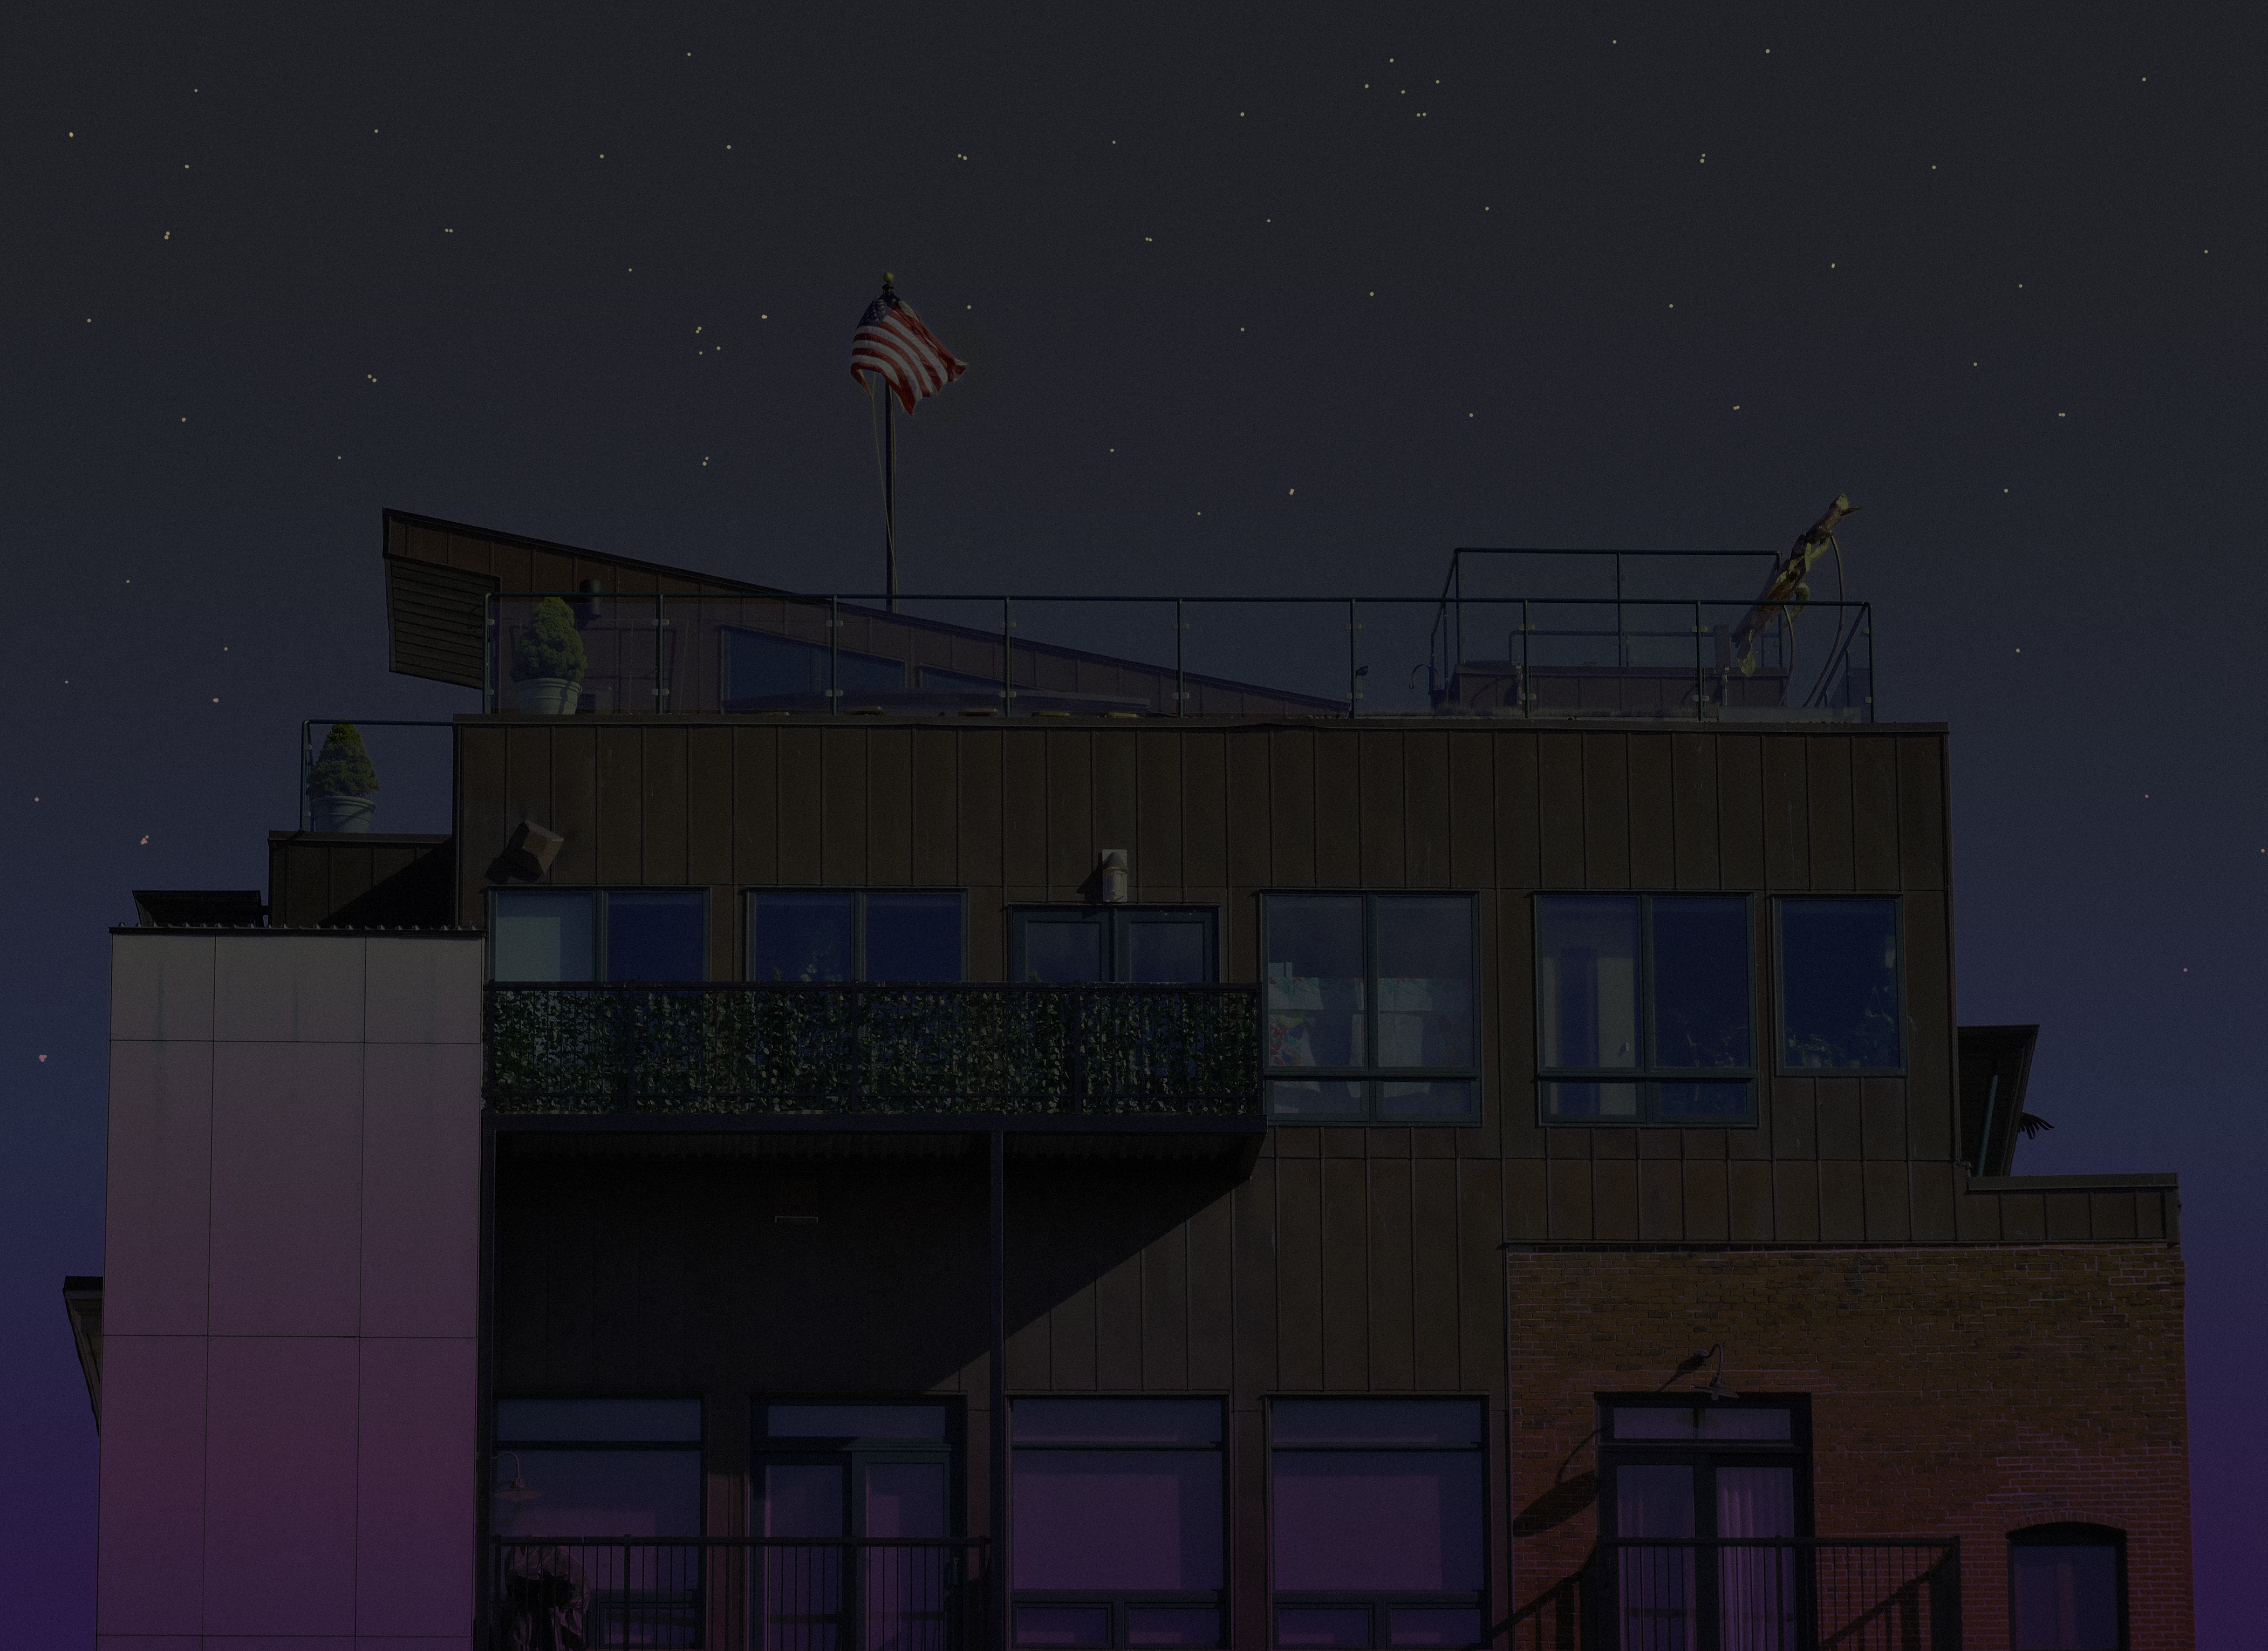 Can't believe it's not night, Apartment, Apartments, Architecture, Condo, HQ Photo